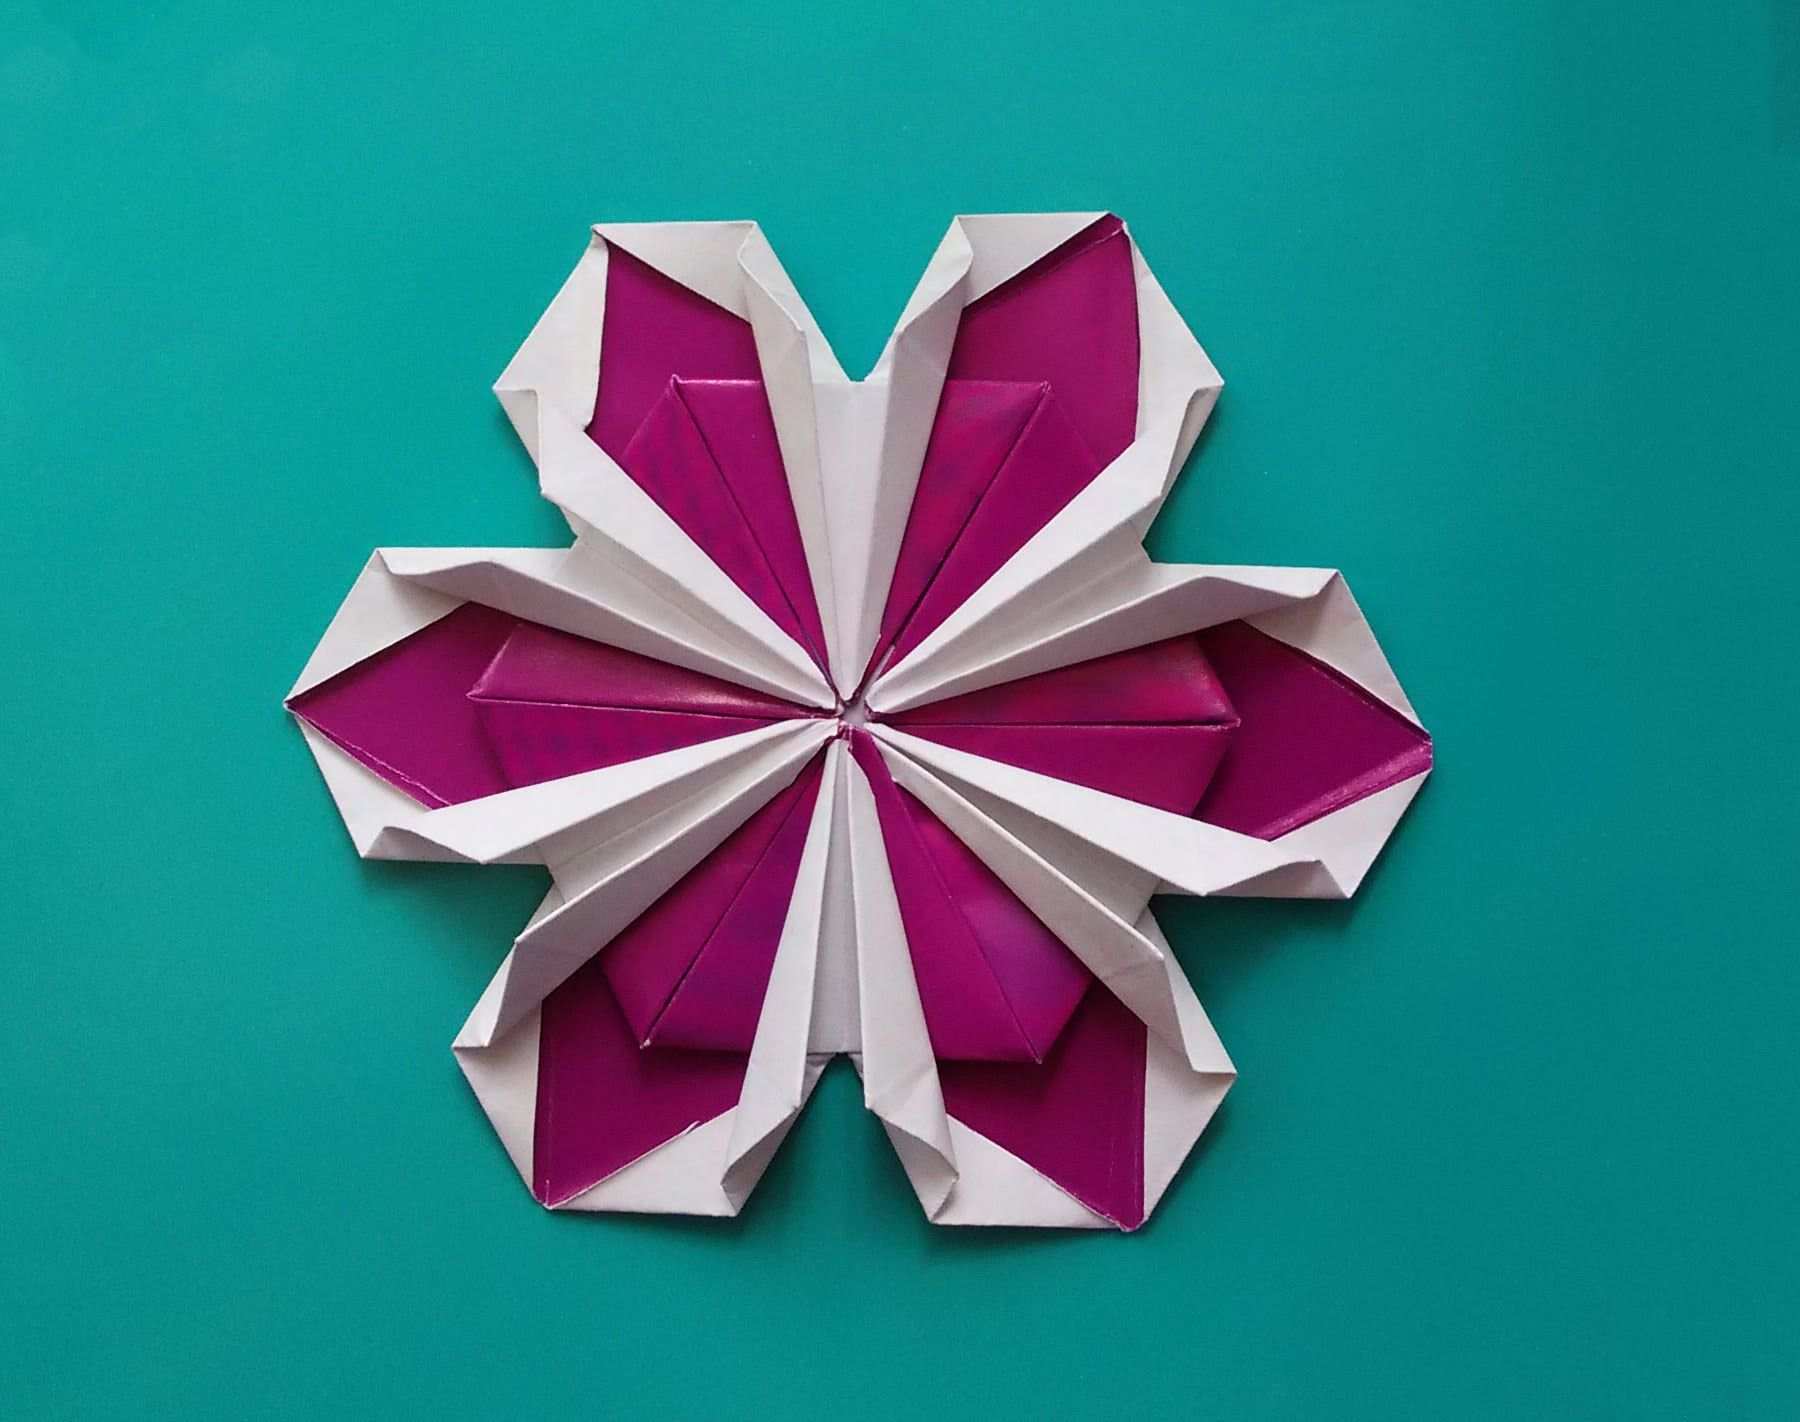 Origami flower not very easy but rich by zoryana sonsyadlo origami flower not very easy but rich by zoryana sonsyadlo house jeuxipadfo Gallery